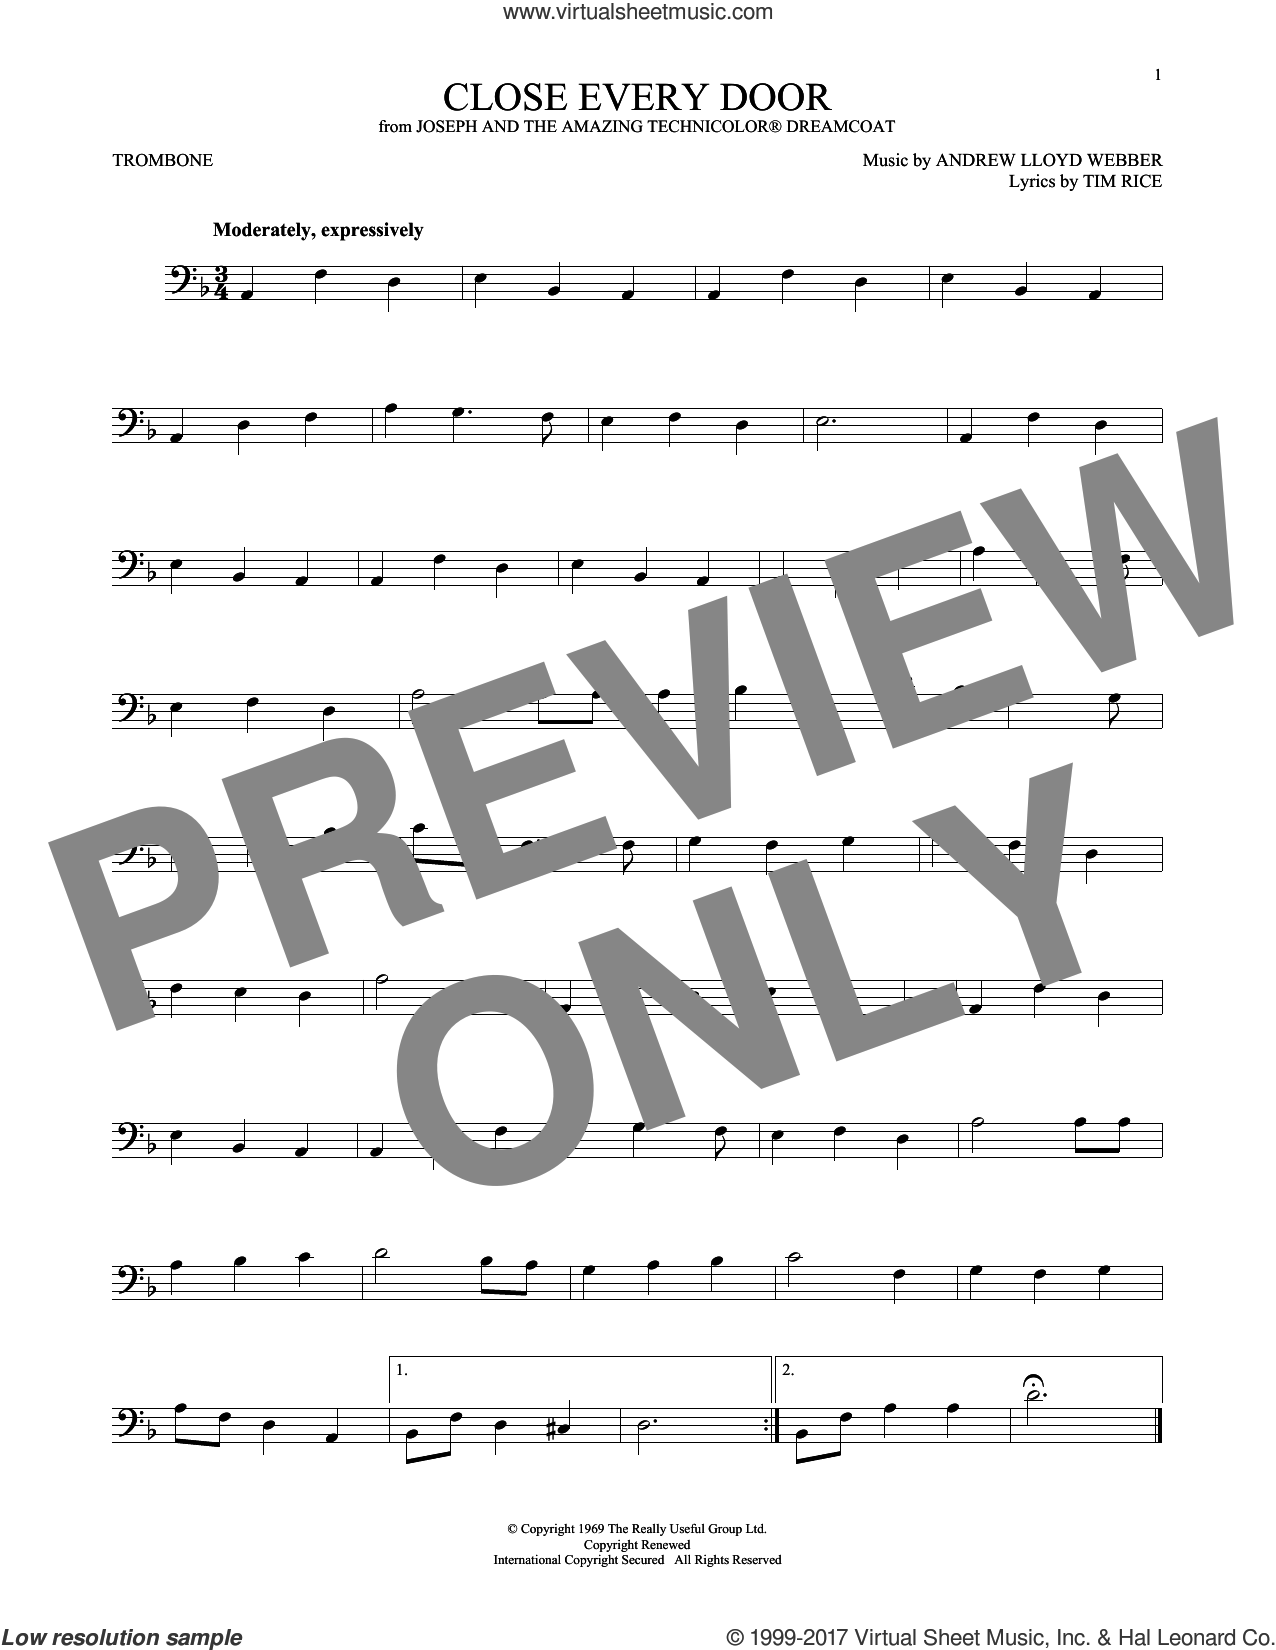 Close Every Door sheet music for trombone solo by Andrew Lloyd Webber and Tim Rice, intermediate skill level